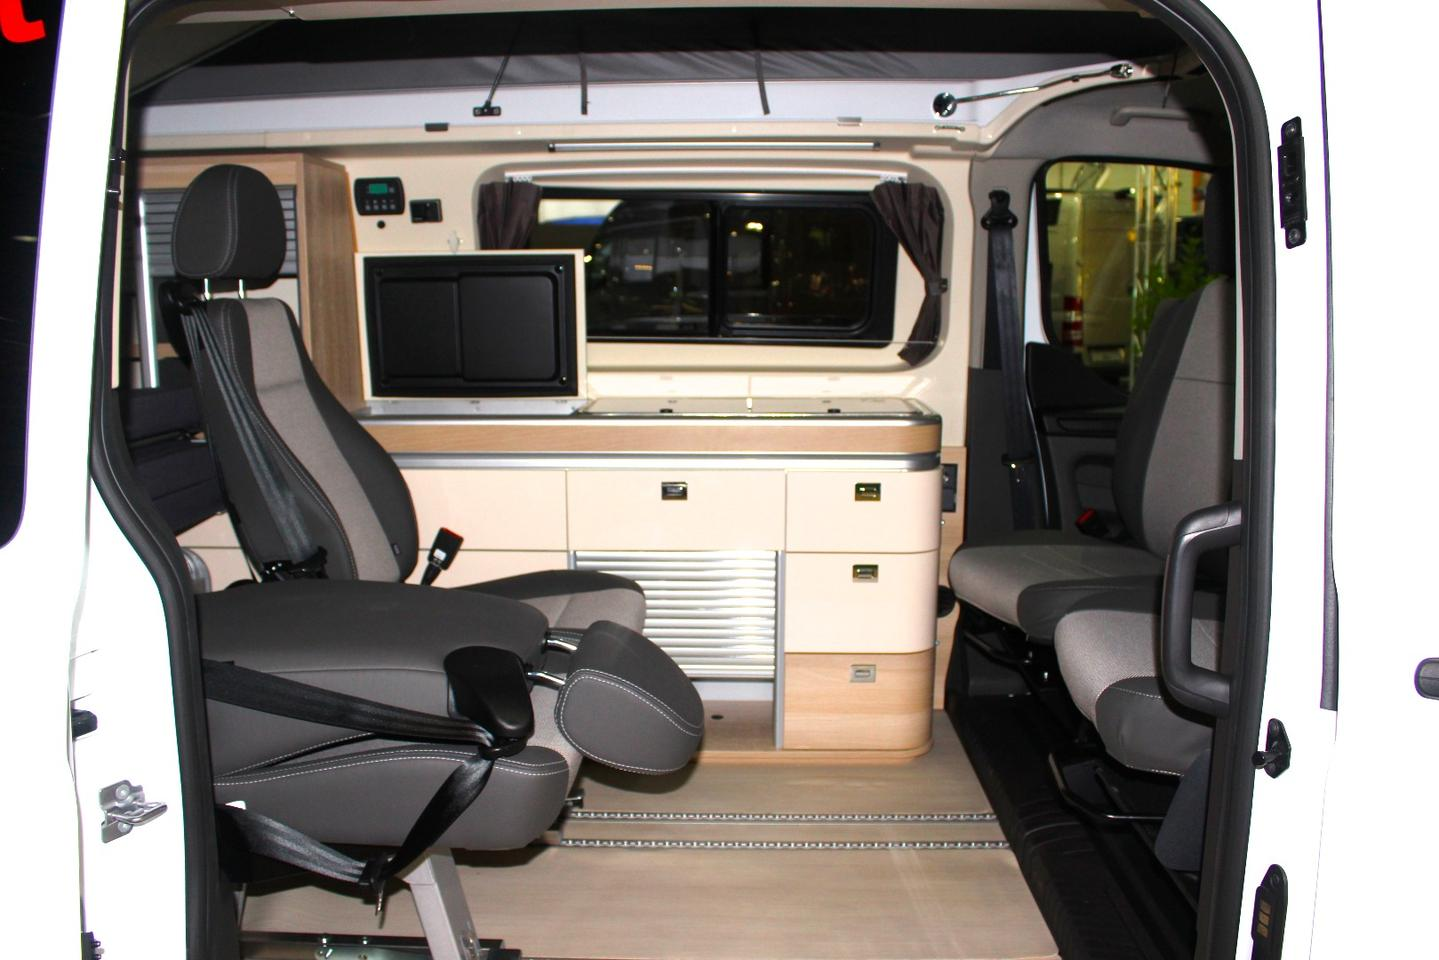 A peek inside the Dreamer Cap Coast Select at its folding rear seats, driver-side kitchen block and swivel front seats